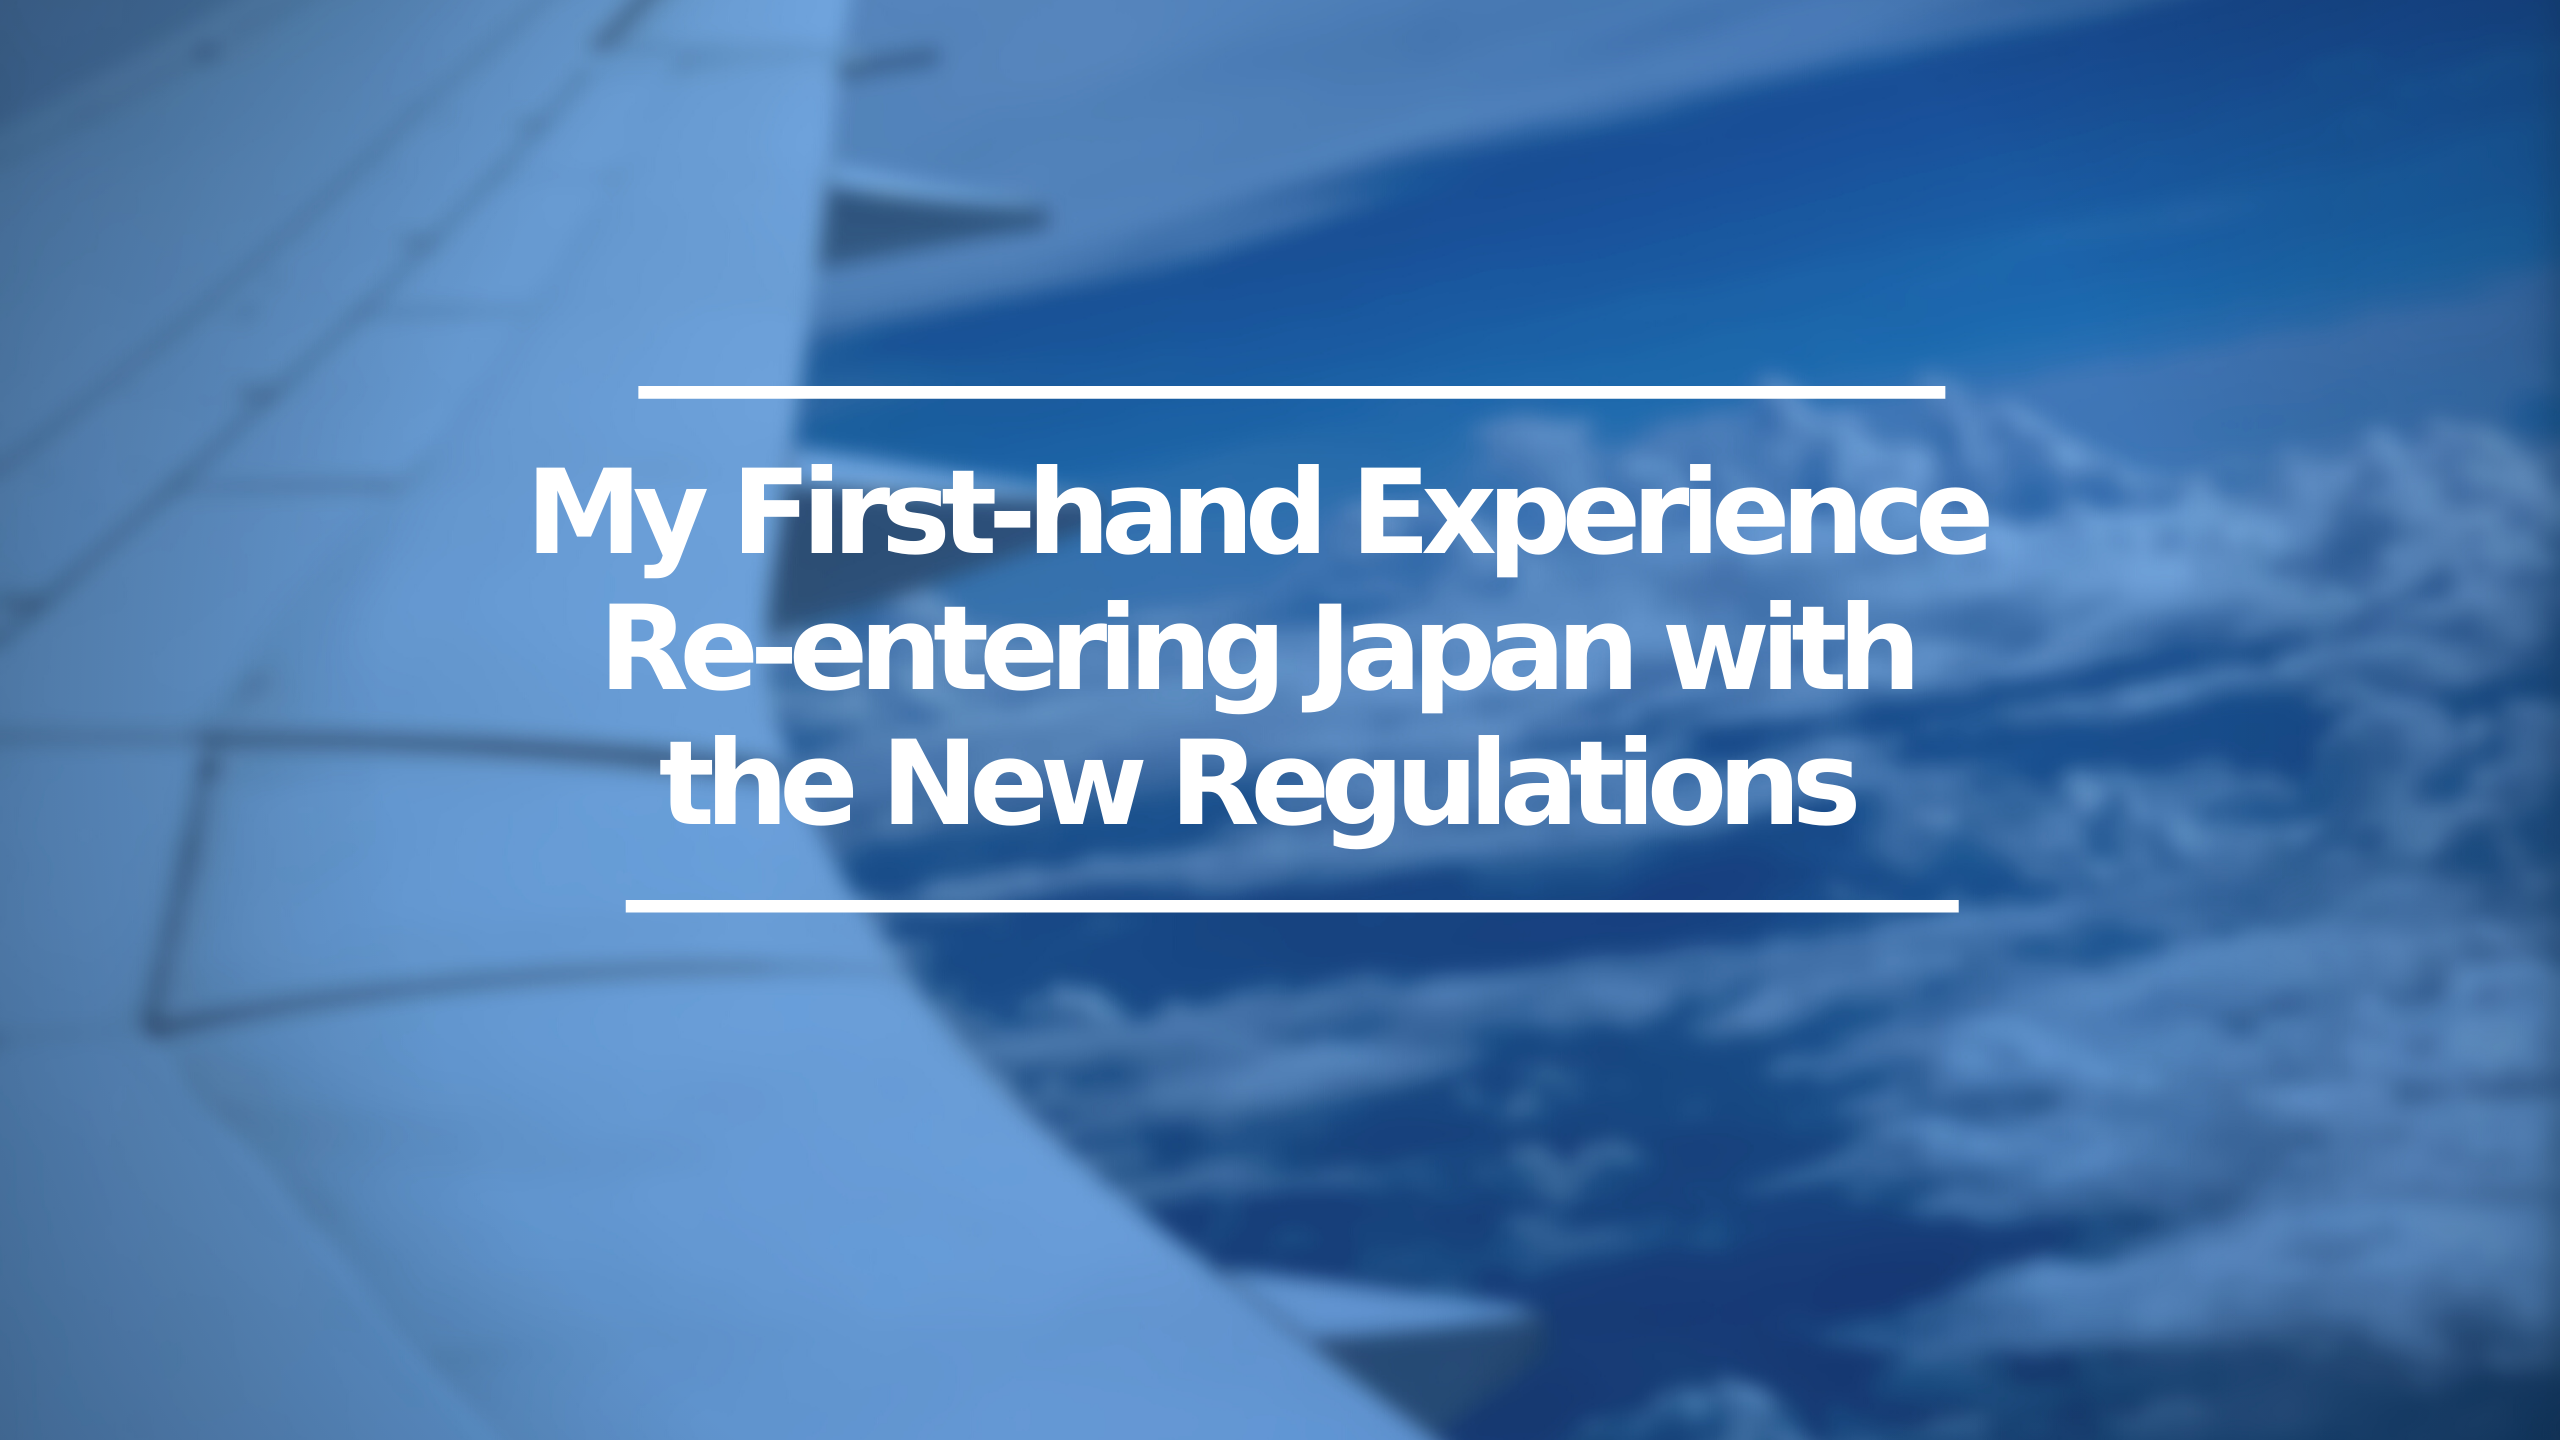 My First-hand Experience Re-entering Japan with the New Regulations